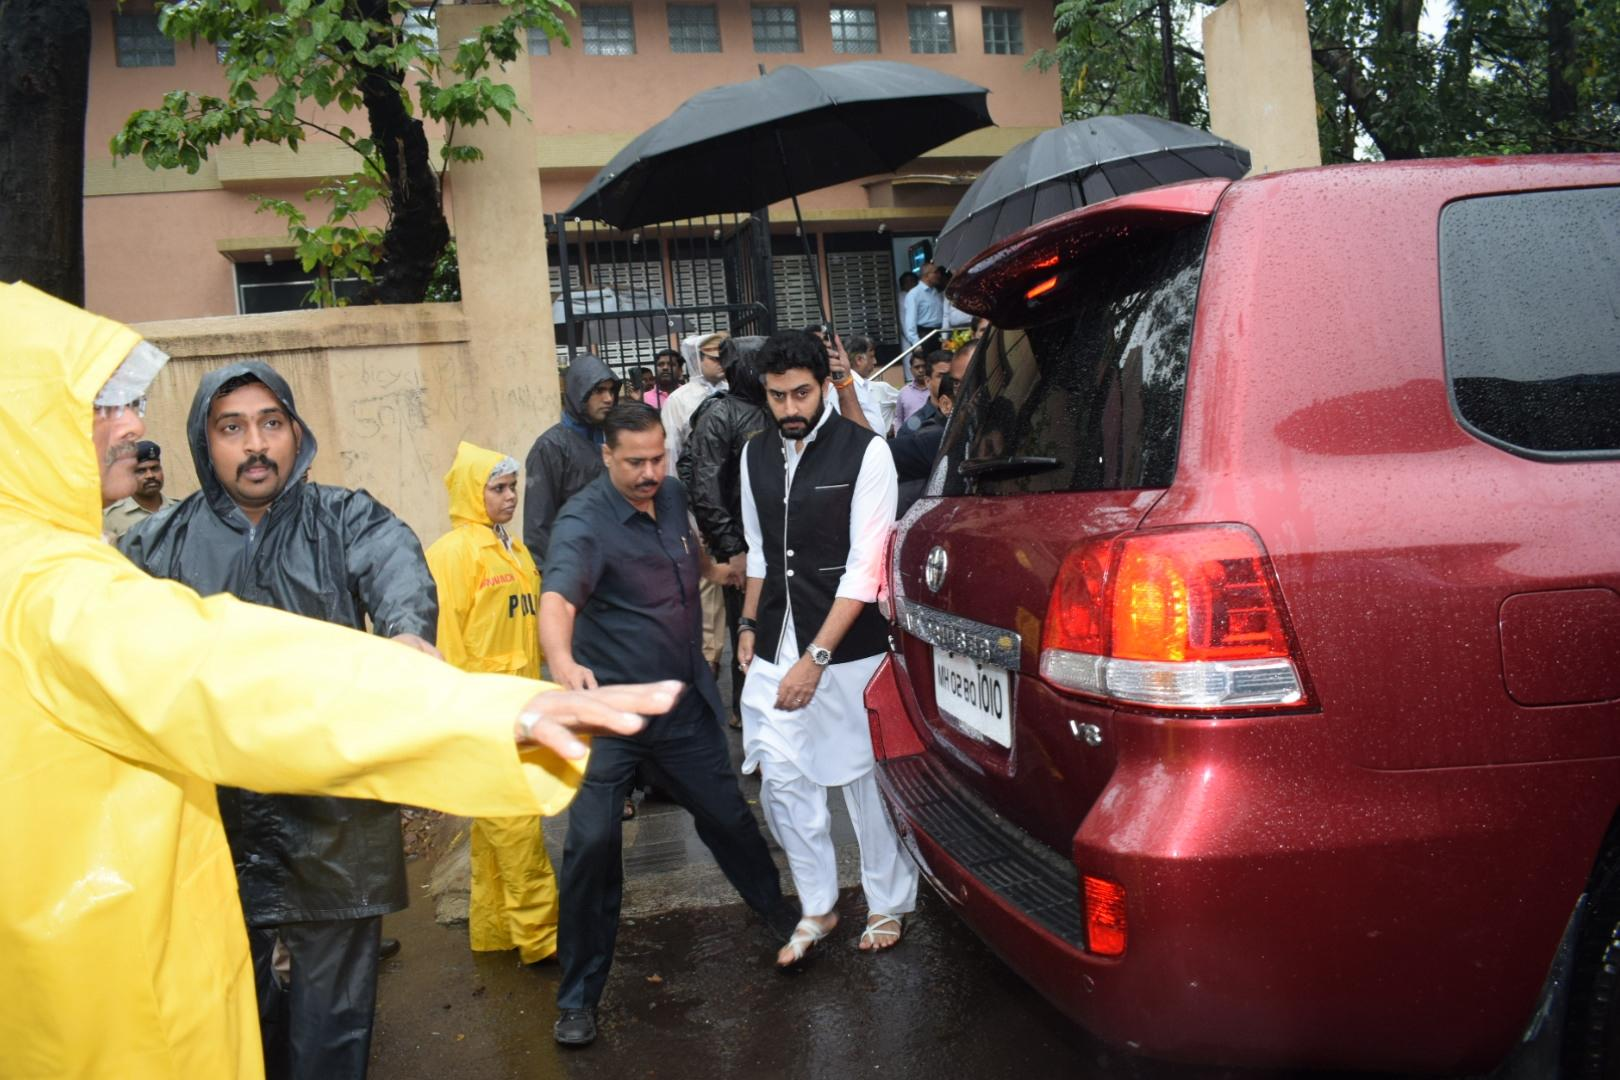 Actor Abhishek Bachchan at the funeral in Mumbai. (Image credit: IANS)